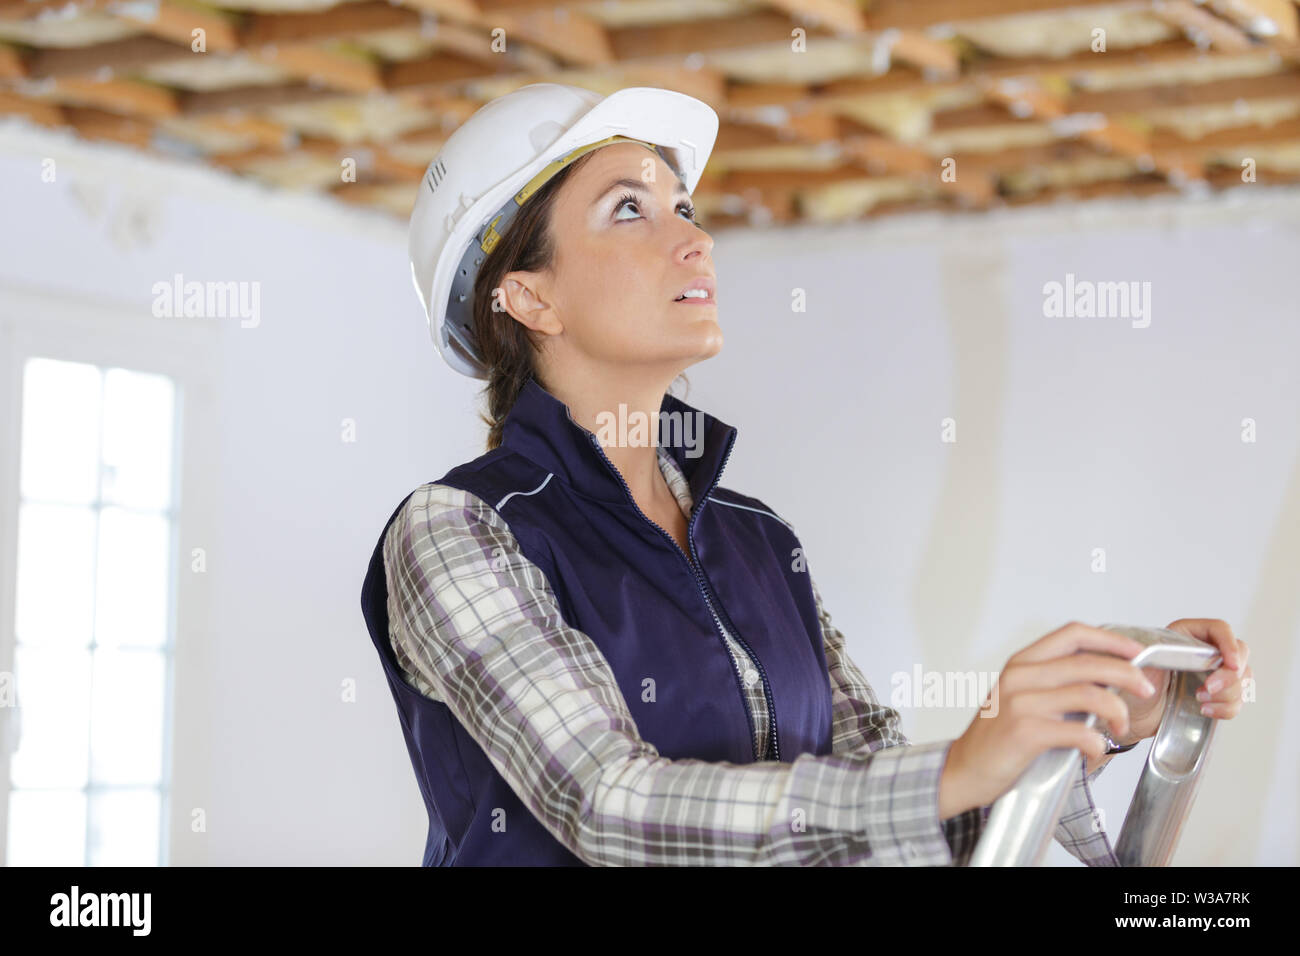 a female painter on a ladder - Stock Image